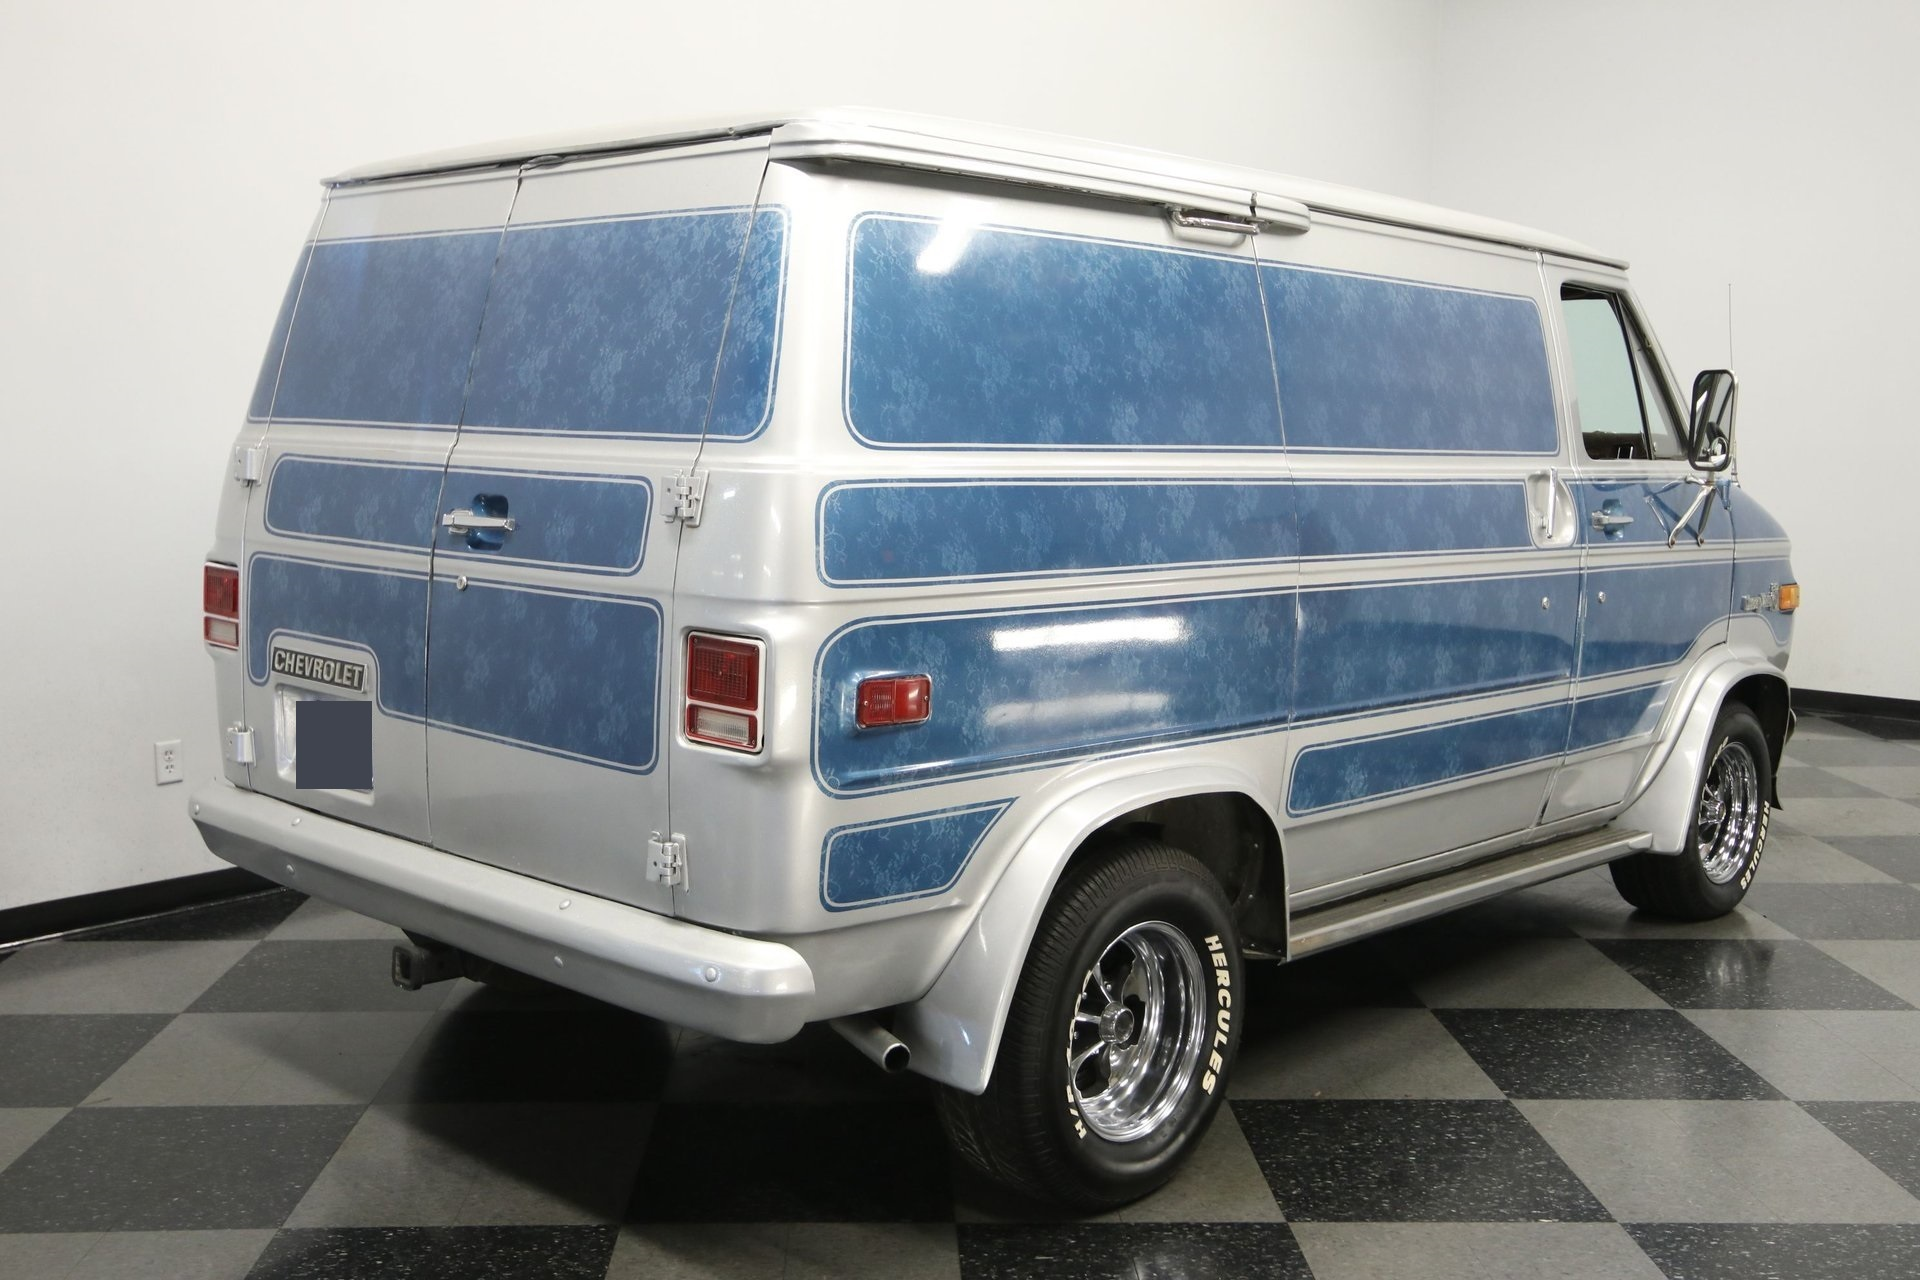 1977-chevrolet-g20-shorty-van-qddj3-z